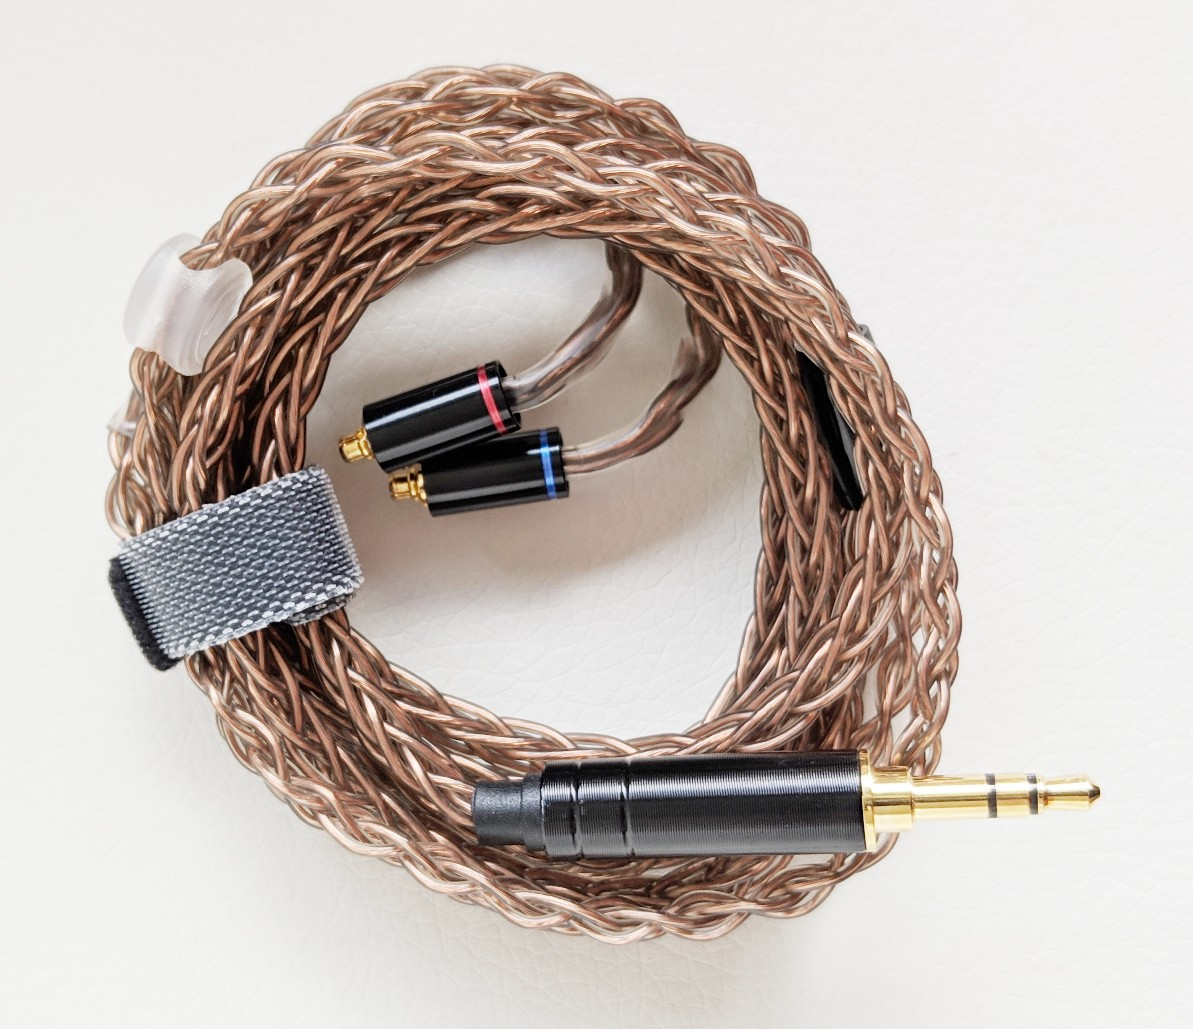 Earphone cable with 3.5mm jack and mmcx connectors.